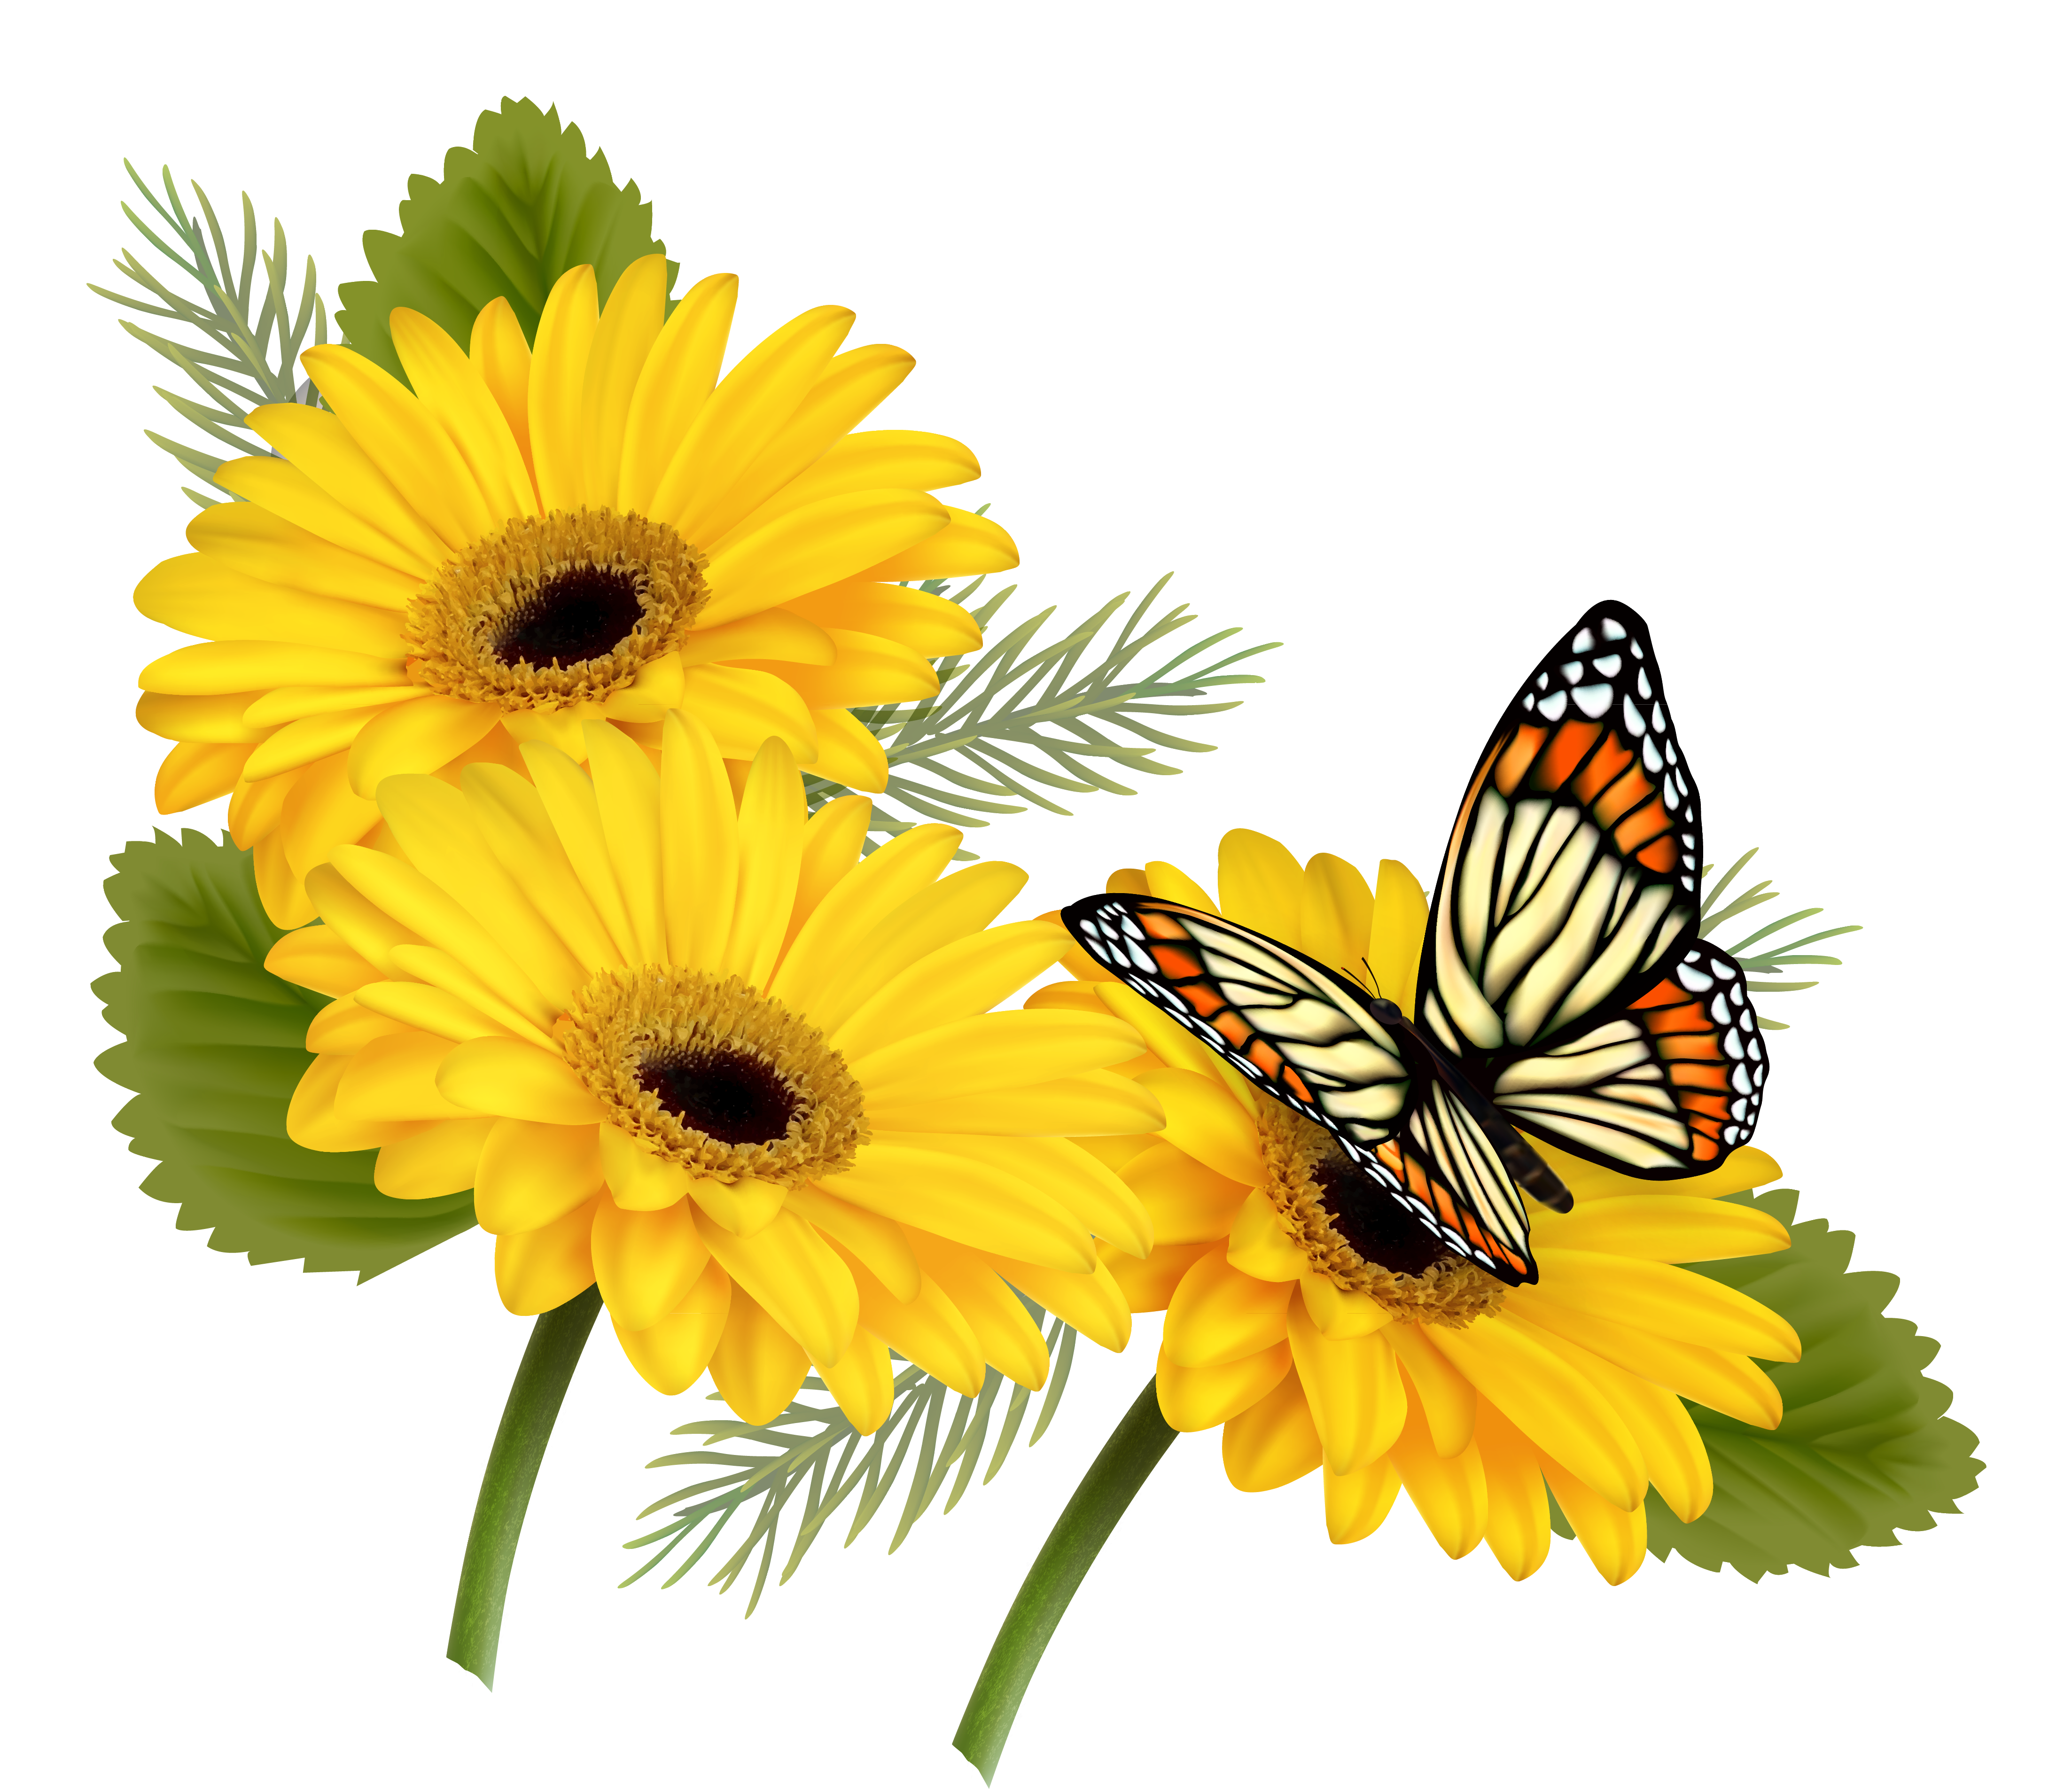 Butterfly on flower png. Yellow gerberas with clipart